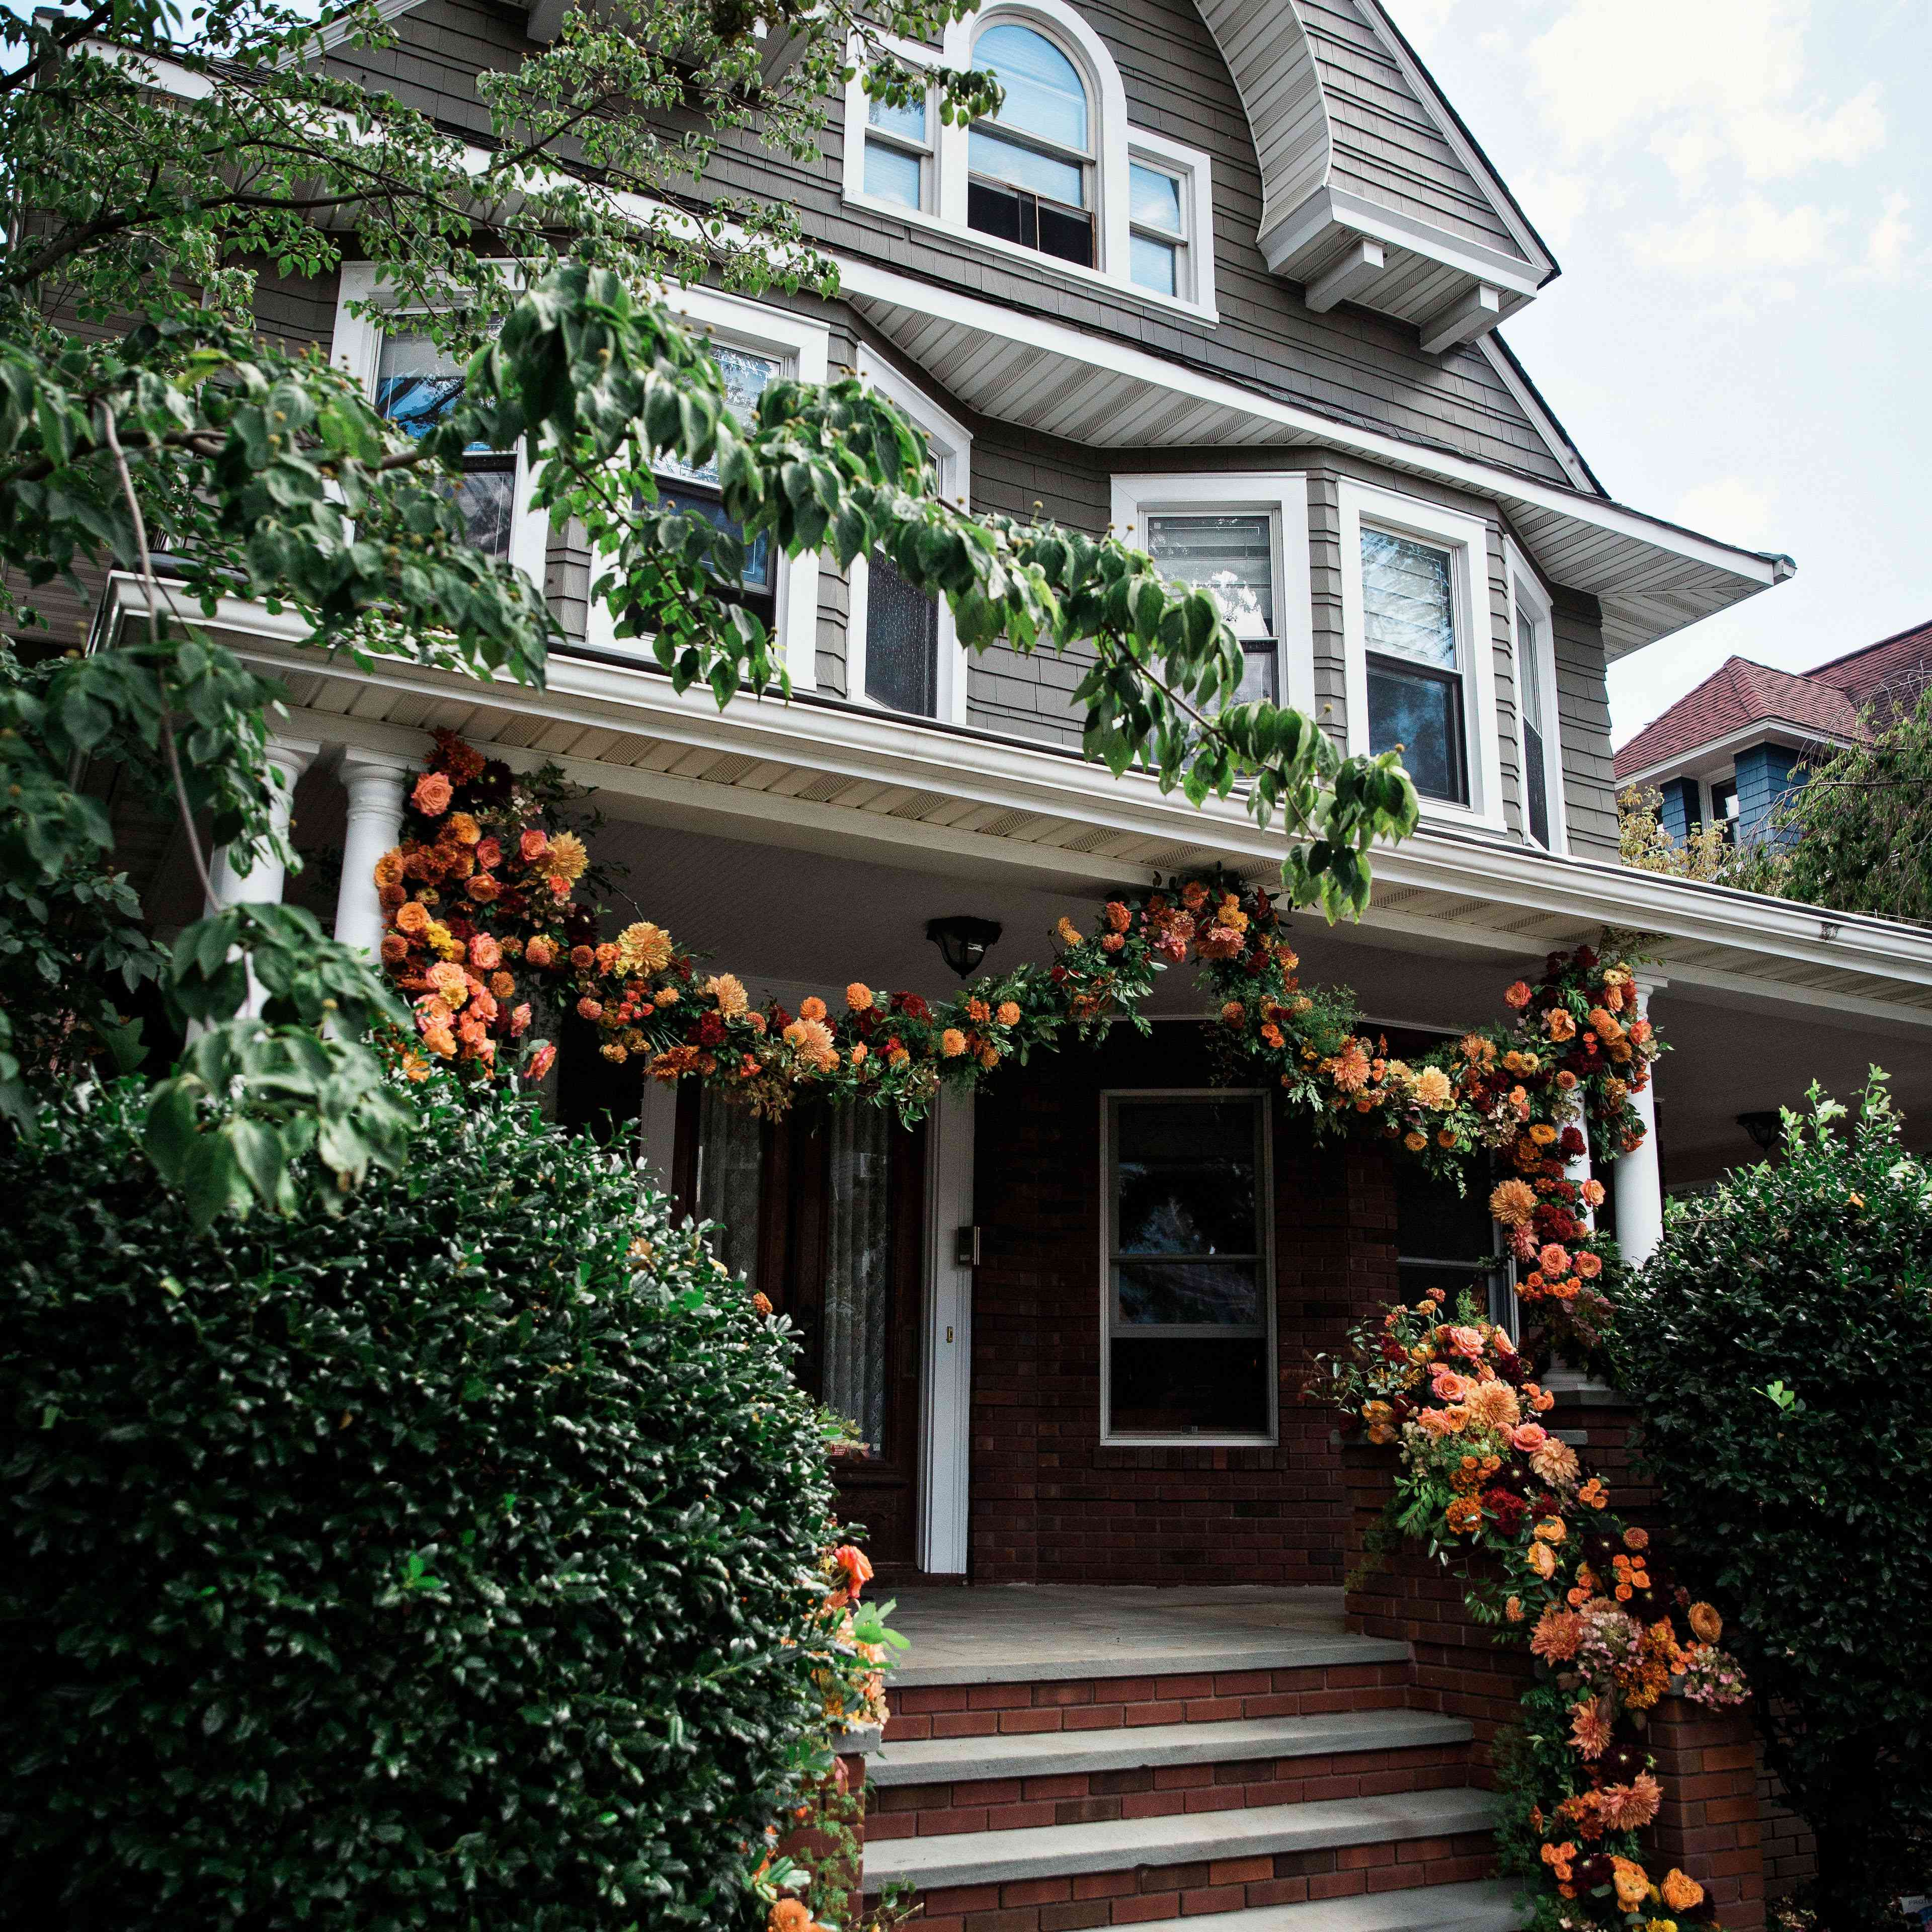 The house with a floral installation